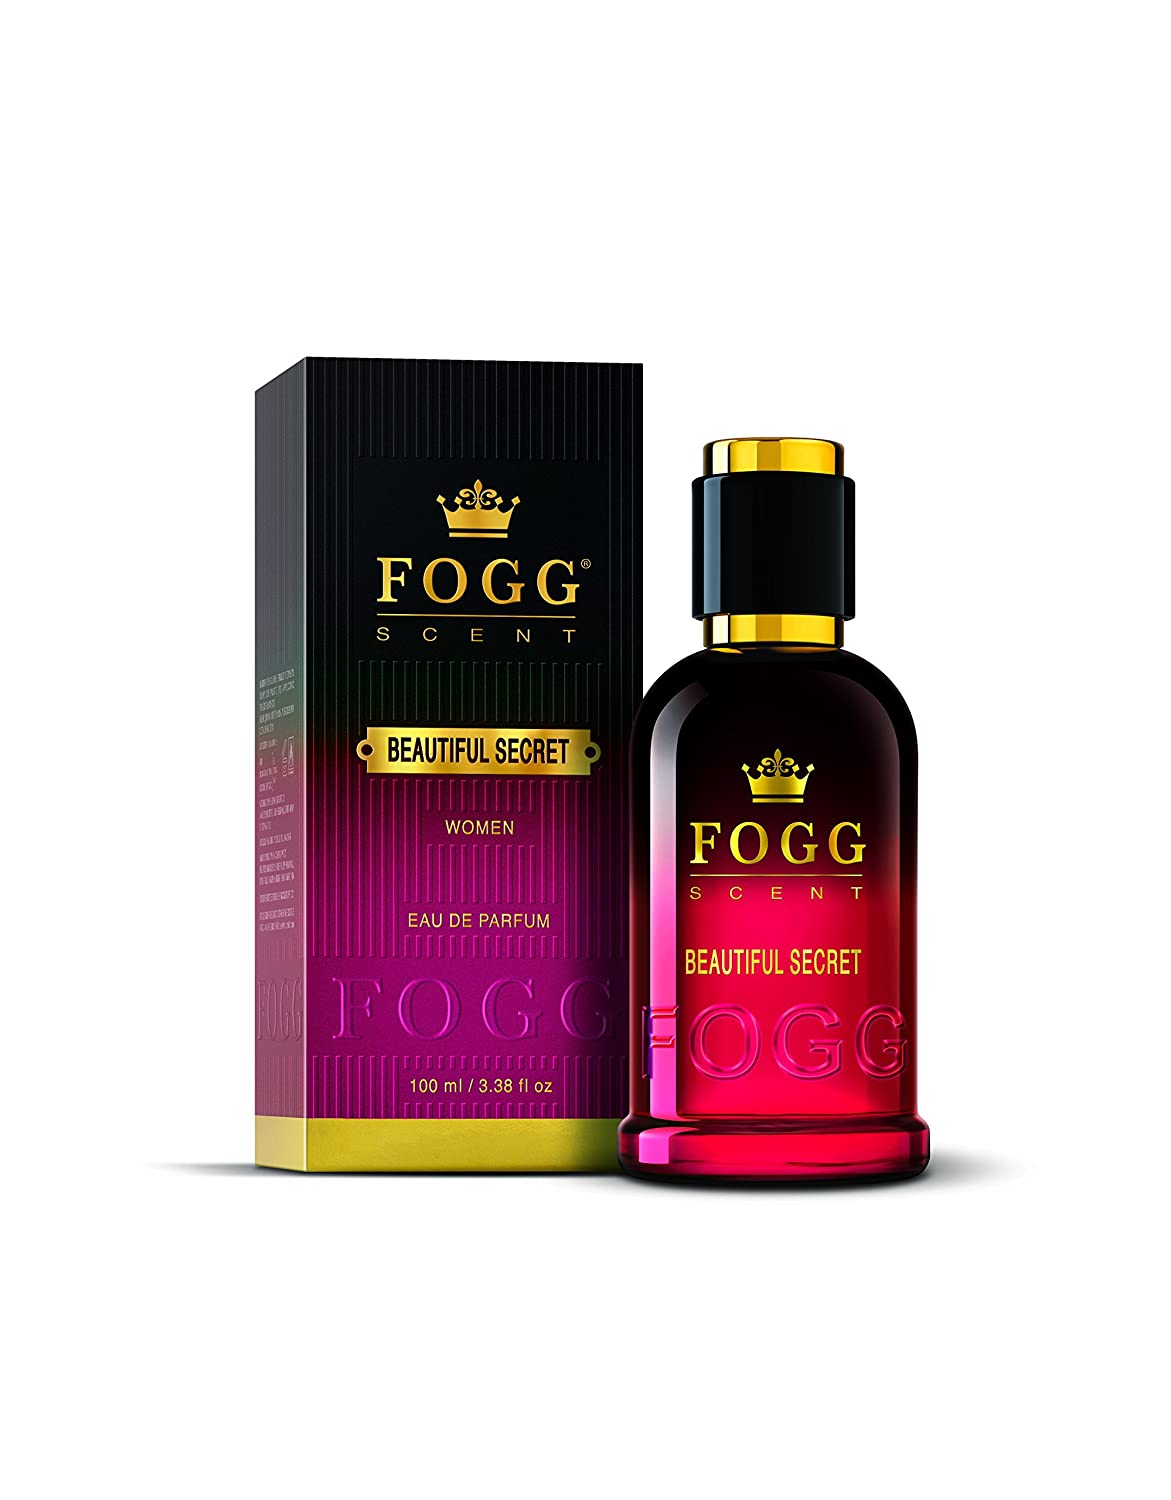 Fogg Beautiful Secret Scent For Women, 100ml